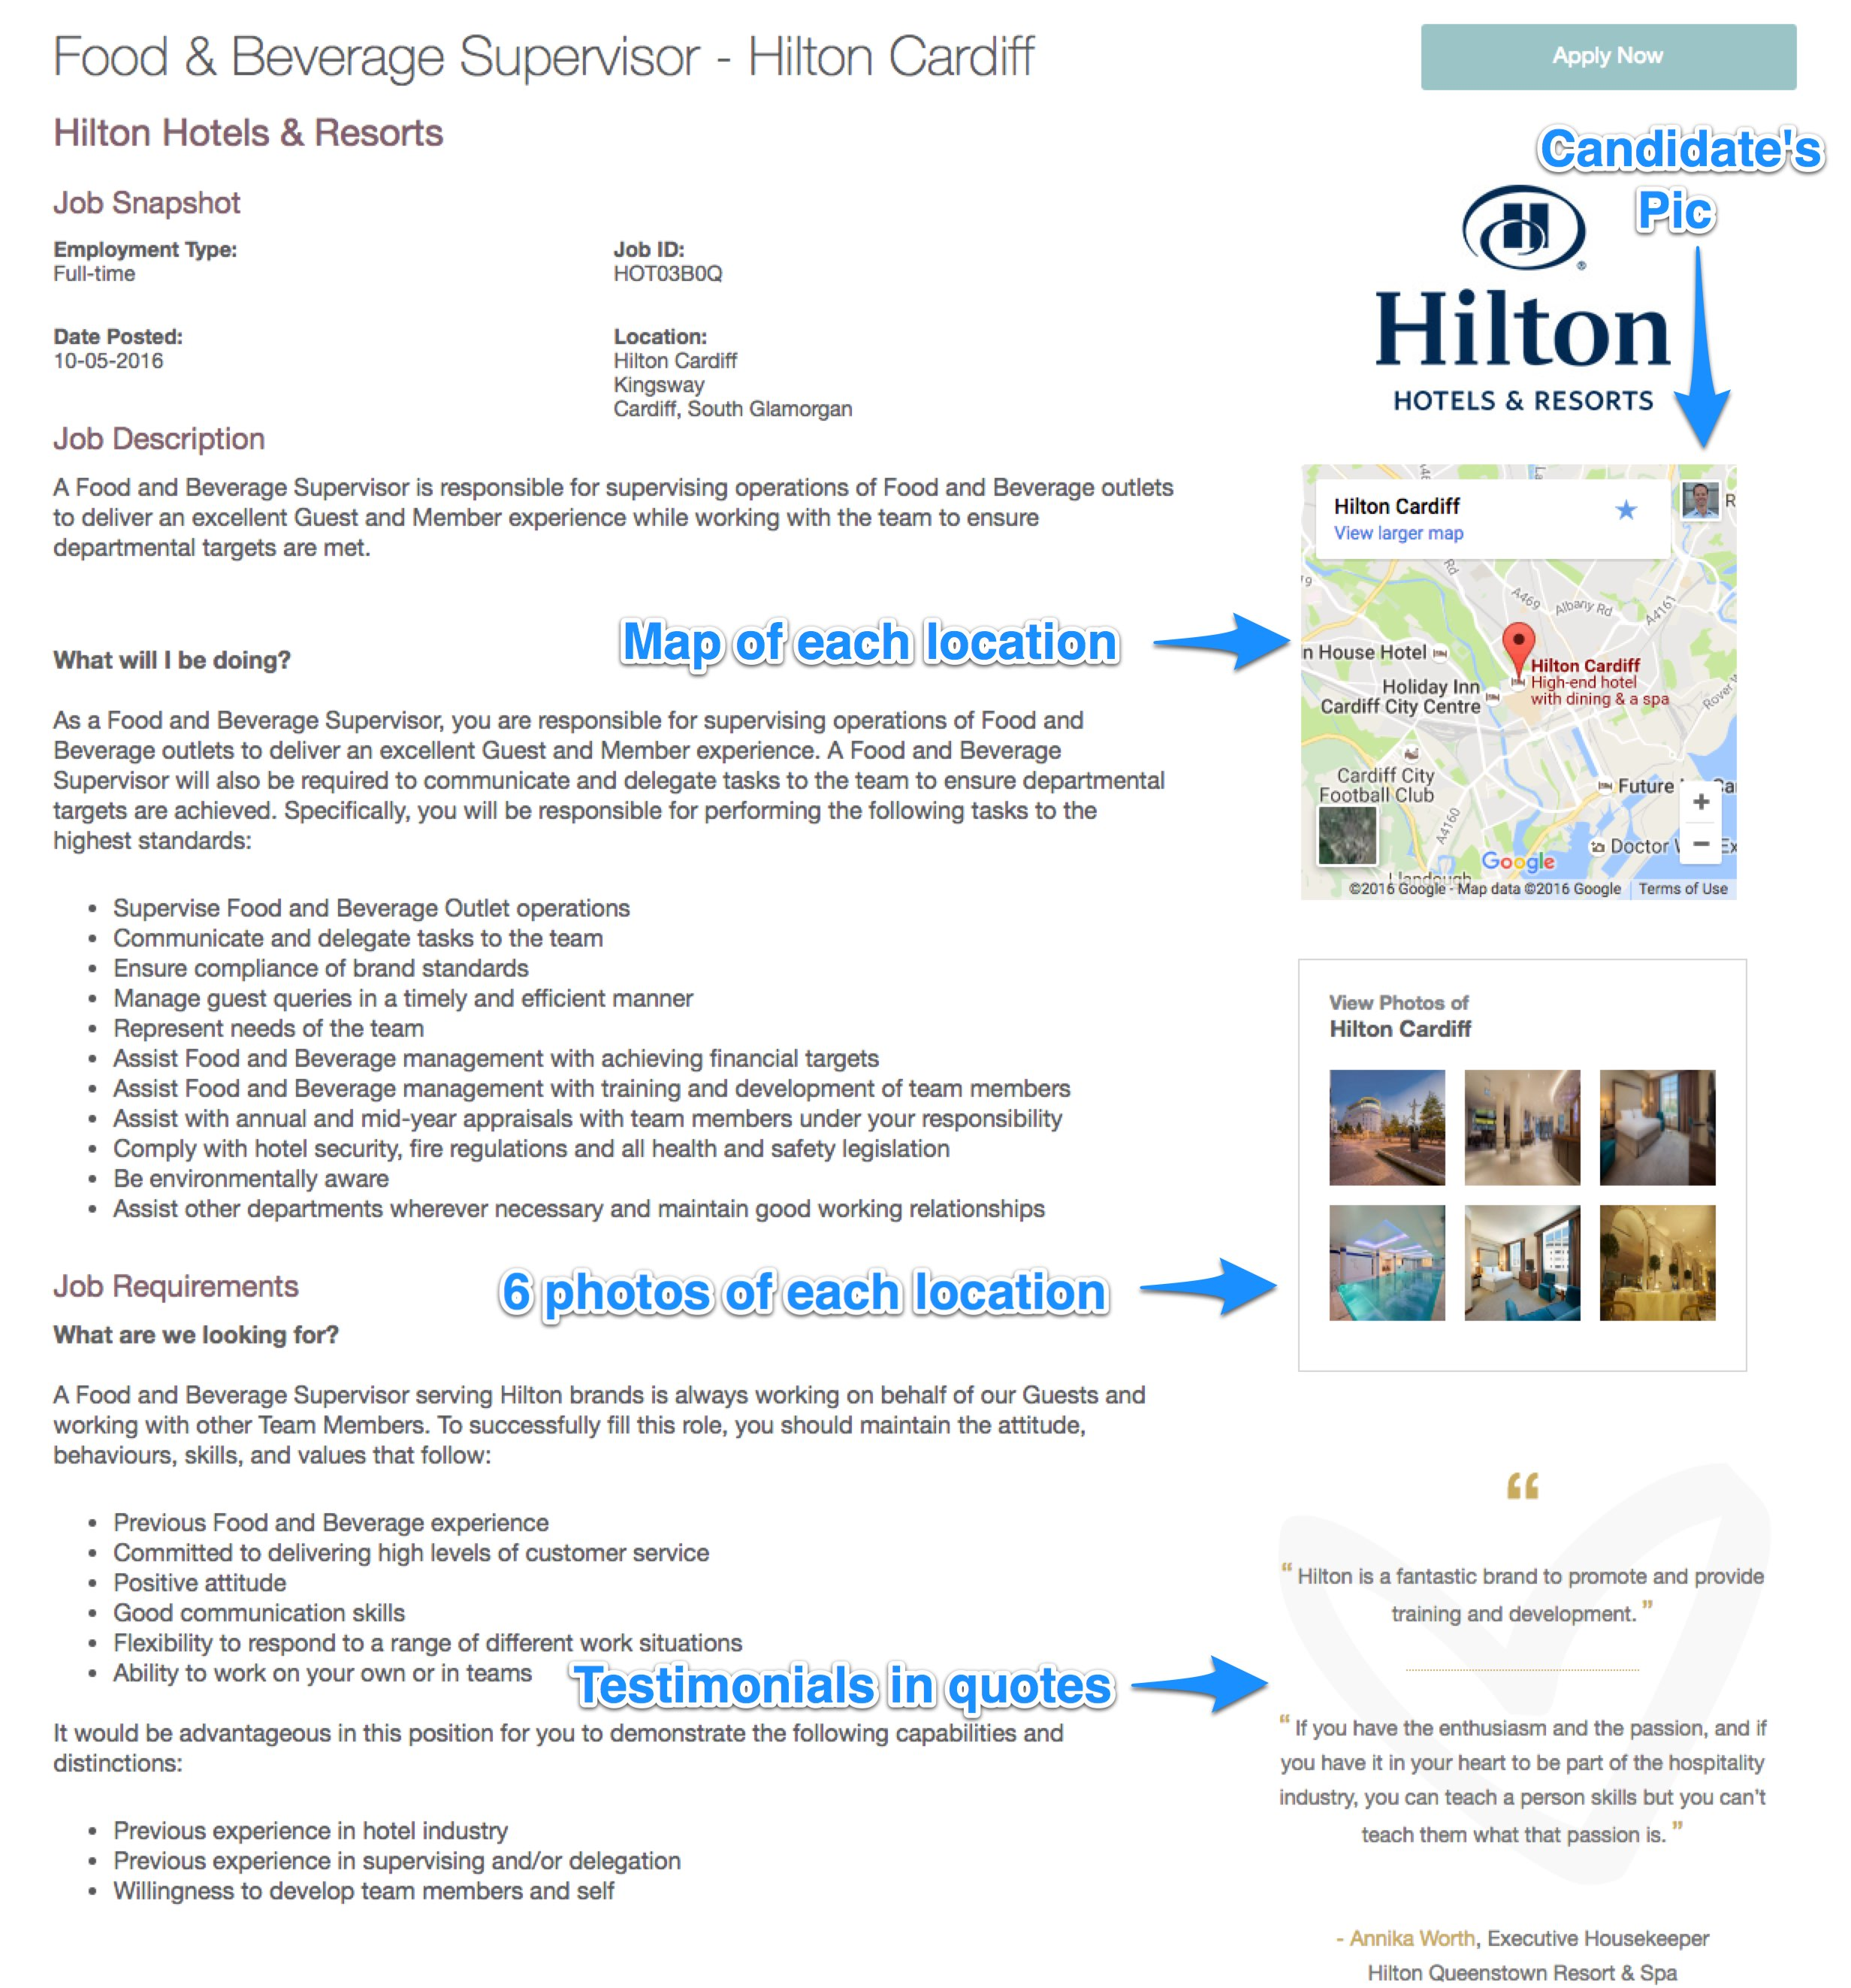 hilton-job-descriptions-ongig-blog